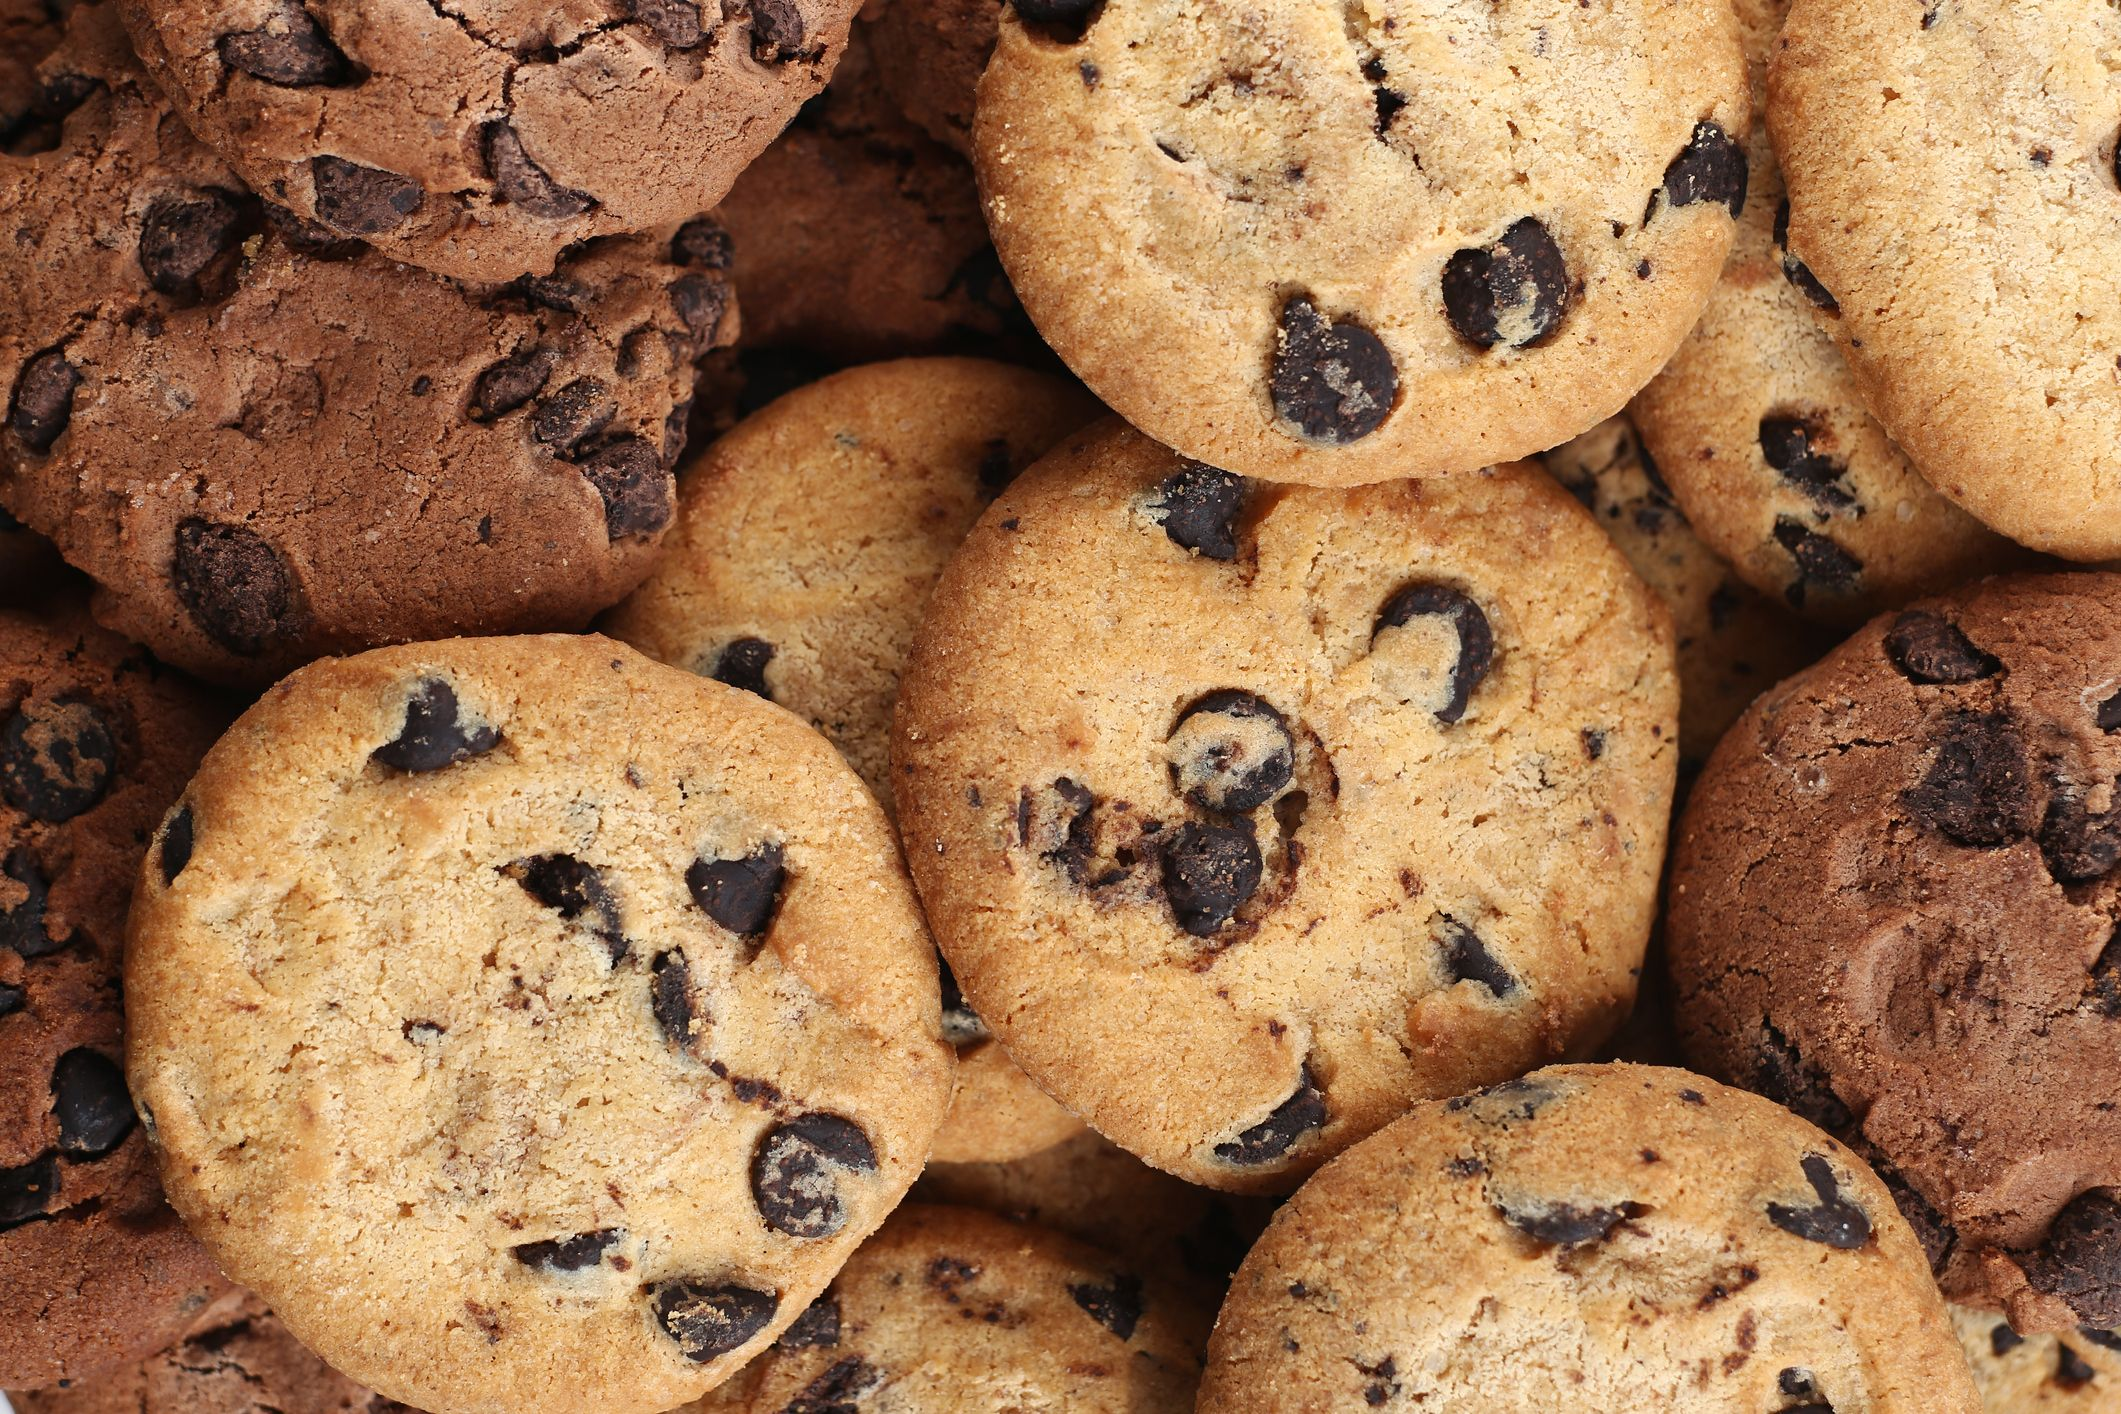 Maryland Cookies Is Trying to Hire an Official Cookie Taster